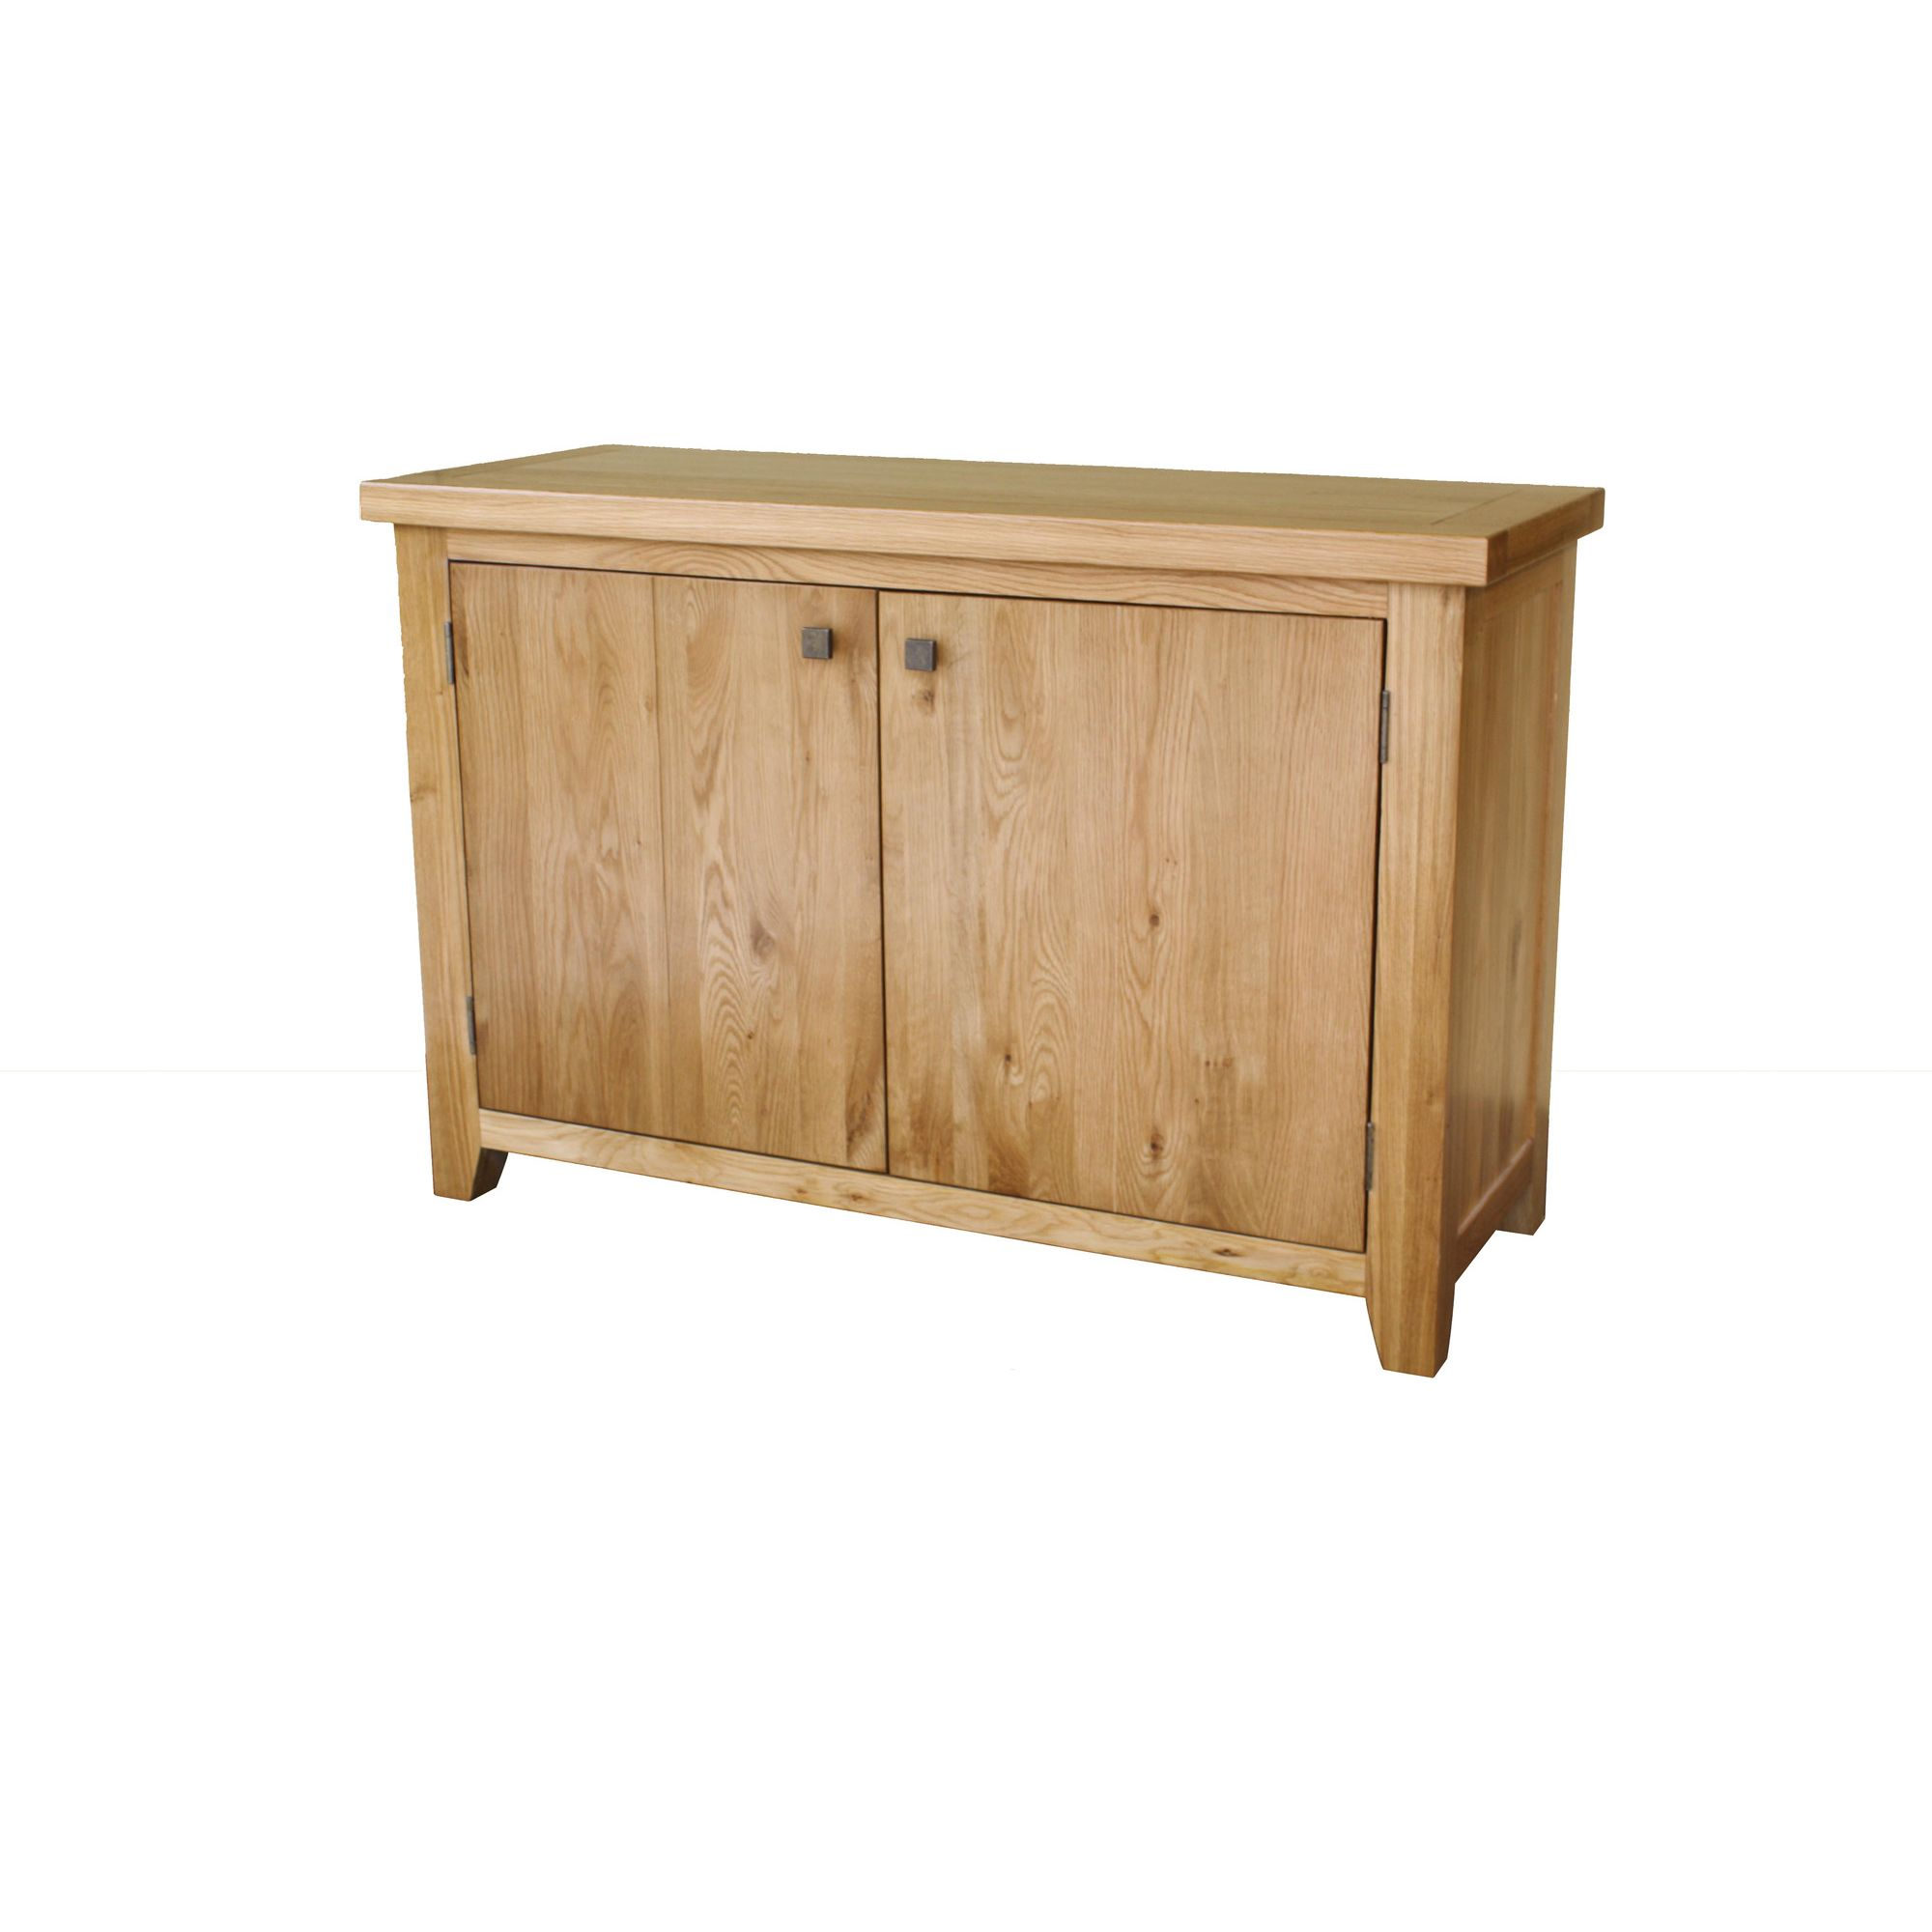 Thorndon Taunton Small Two Door Sideboard in Rustic - Small at Tesco Direct